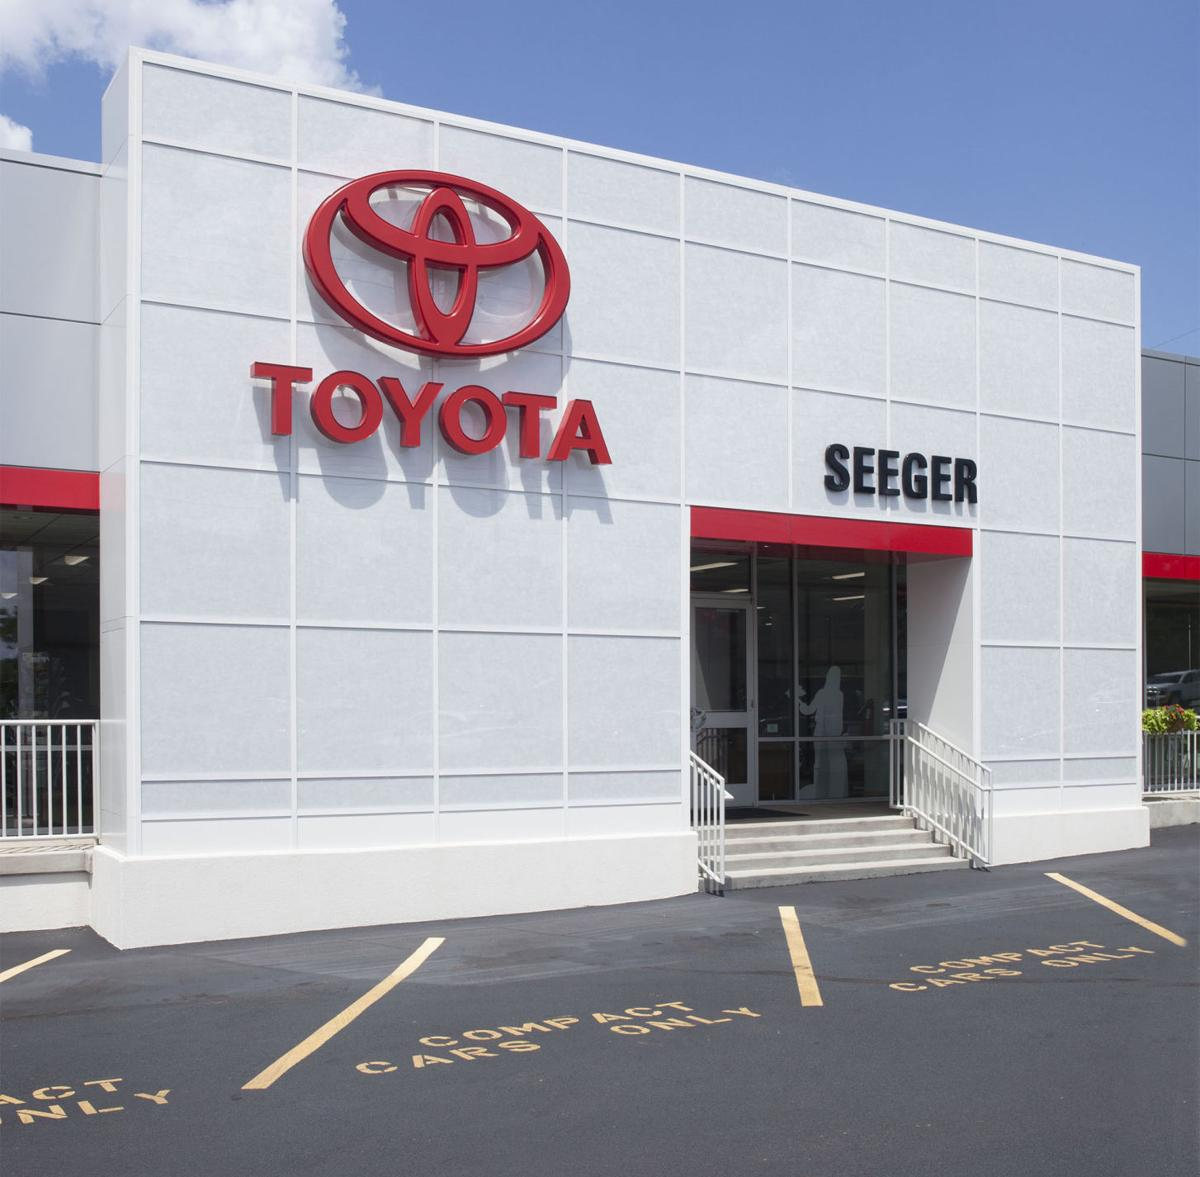 Toyota Dealers St Louis: Insider Info From Seeger Toyota